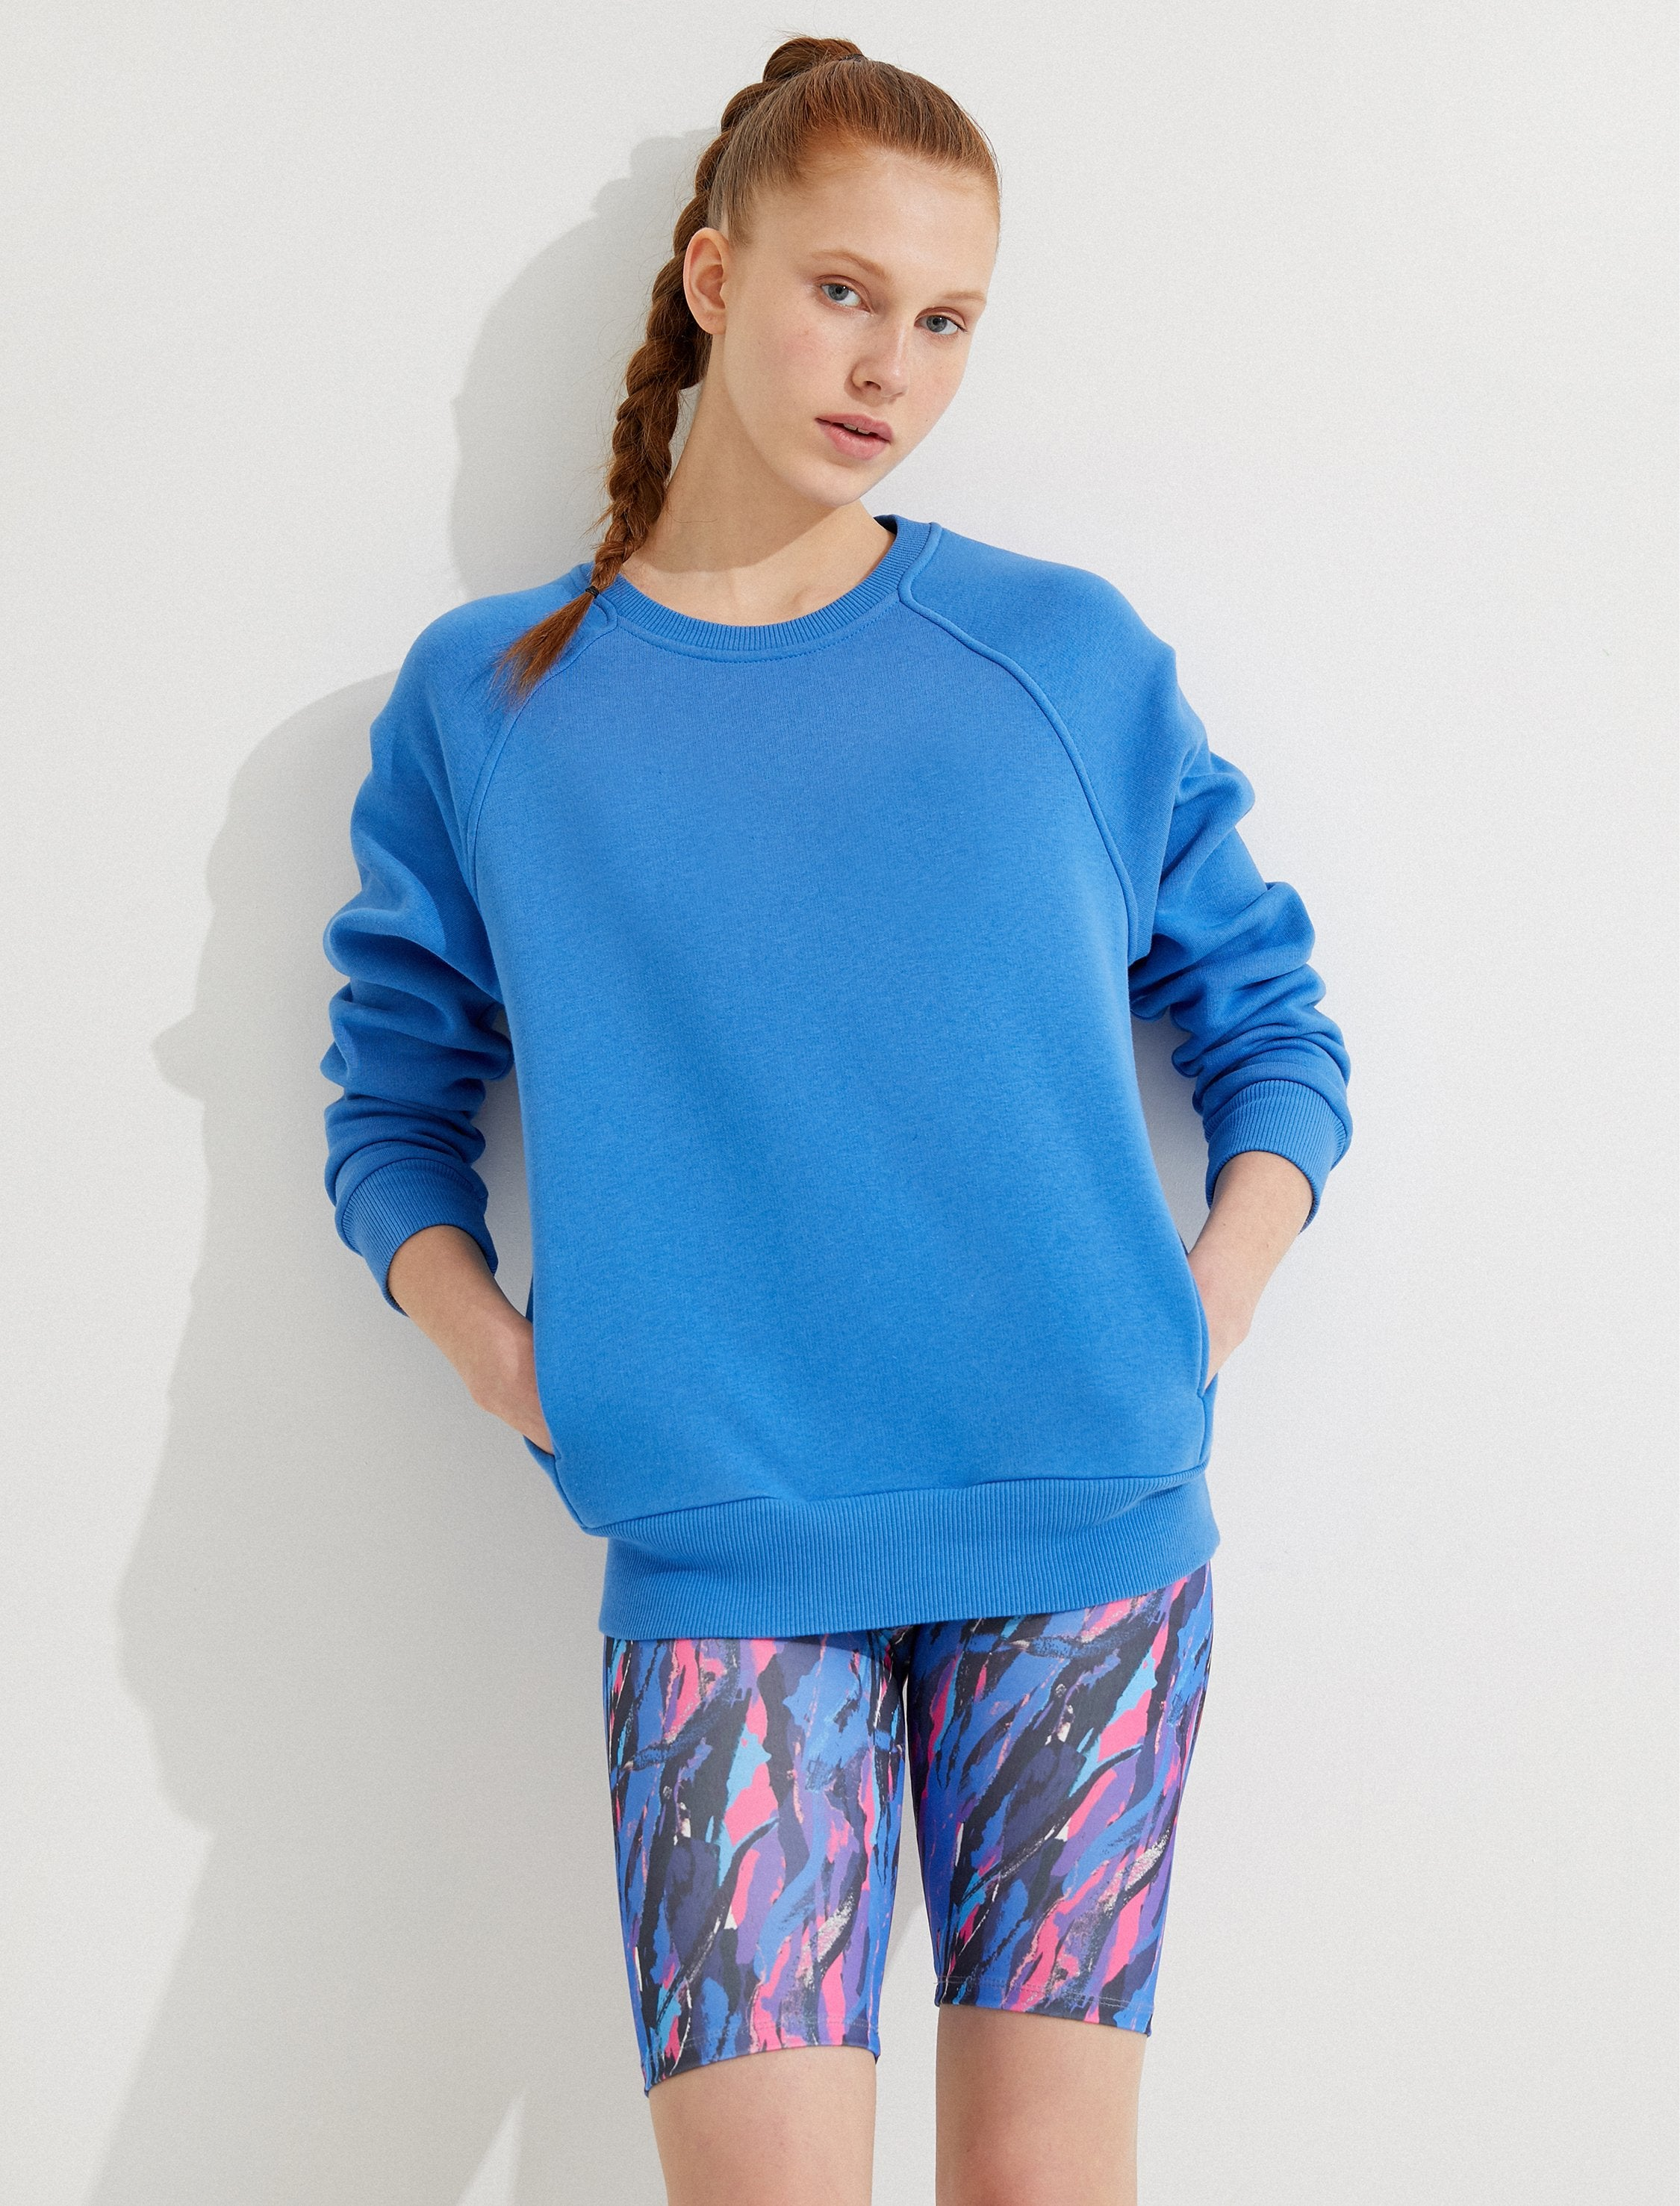 Oversize Workout Crew in Blue